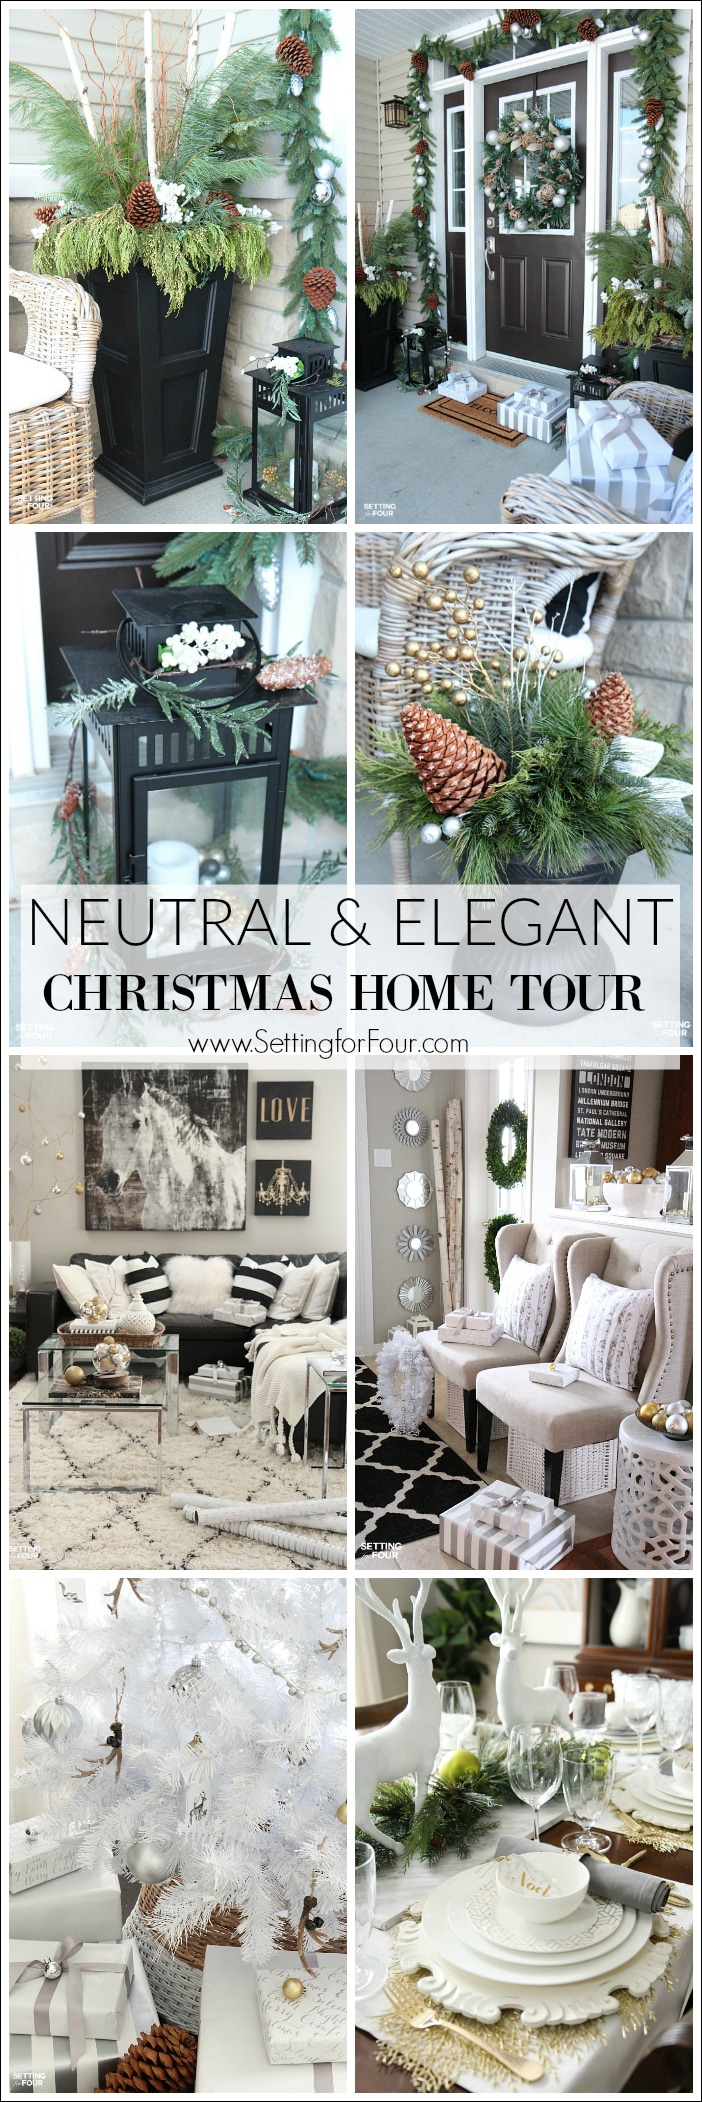 Love neutrals and glam decor? Come and see my Neutral and Elegant Christmas Home Tour! I'm sharing lots of ideas on how to decorate for the holidays with metallics, neutrals and elegant glam decor!